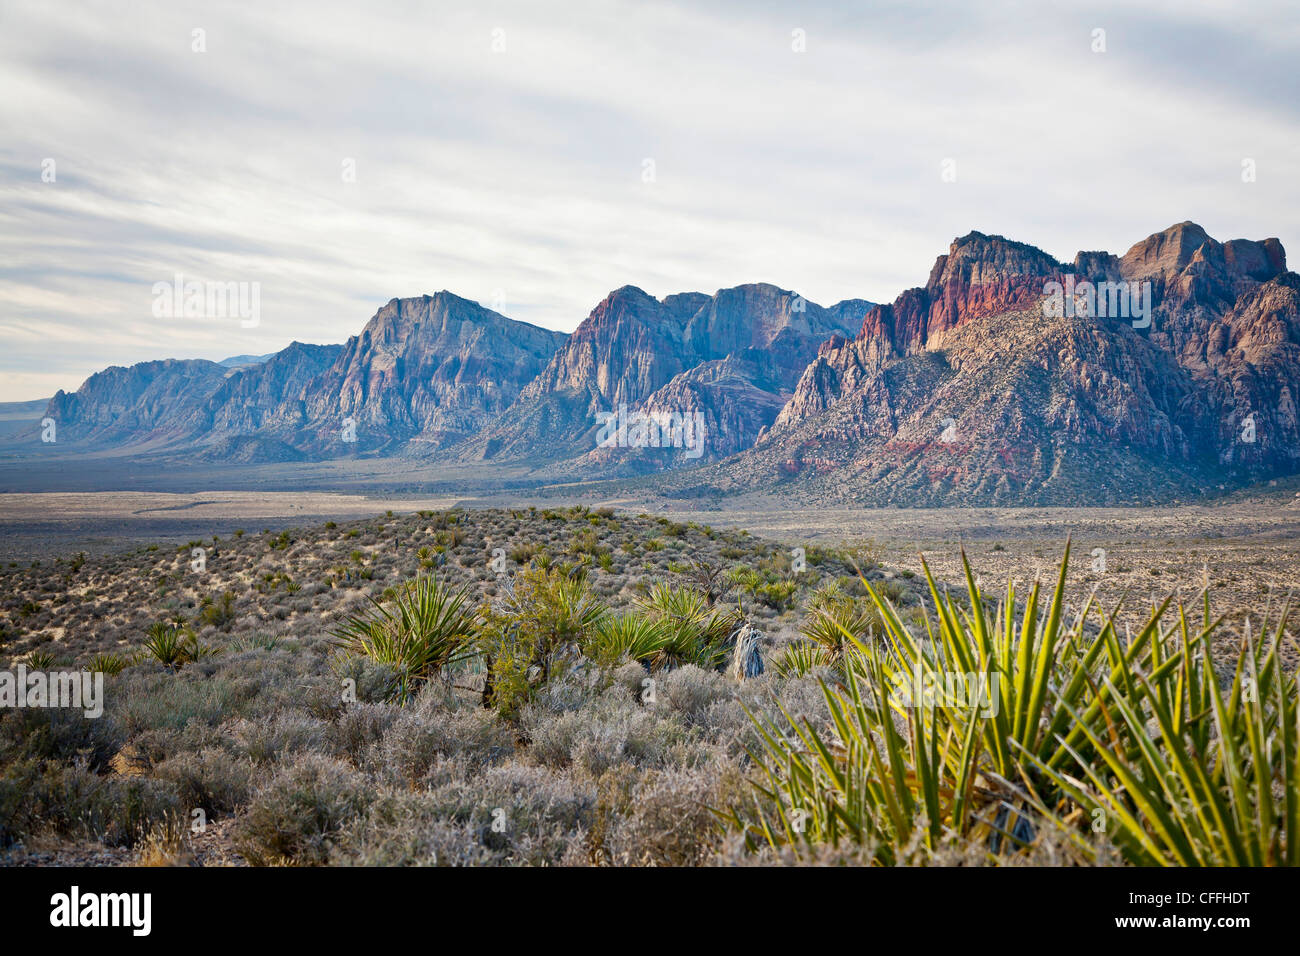 Red Rock Canyon National Conservation Area, Nevada, USA. - Stock Image